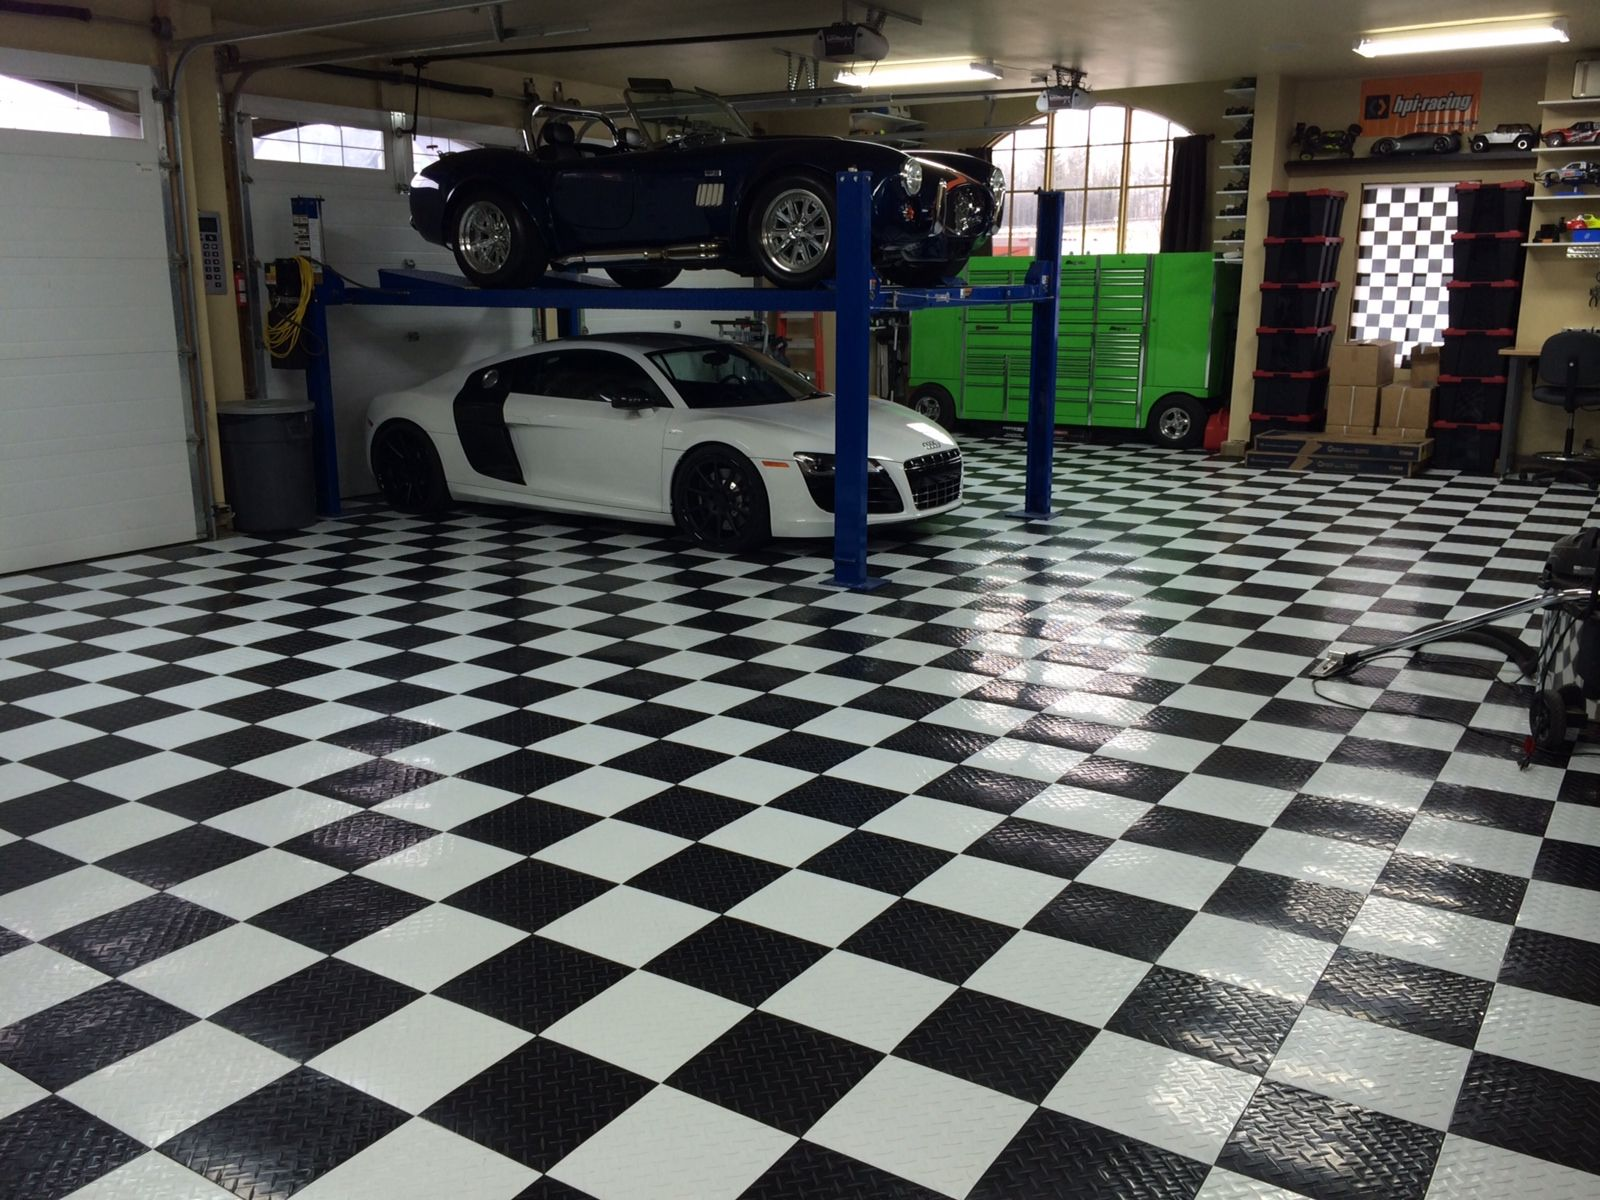 Awesome garages plus fluorescent light awesome checkered plus fluorescent light awesome checkered garage floor tiles design dailygadgetfo Choice Image